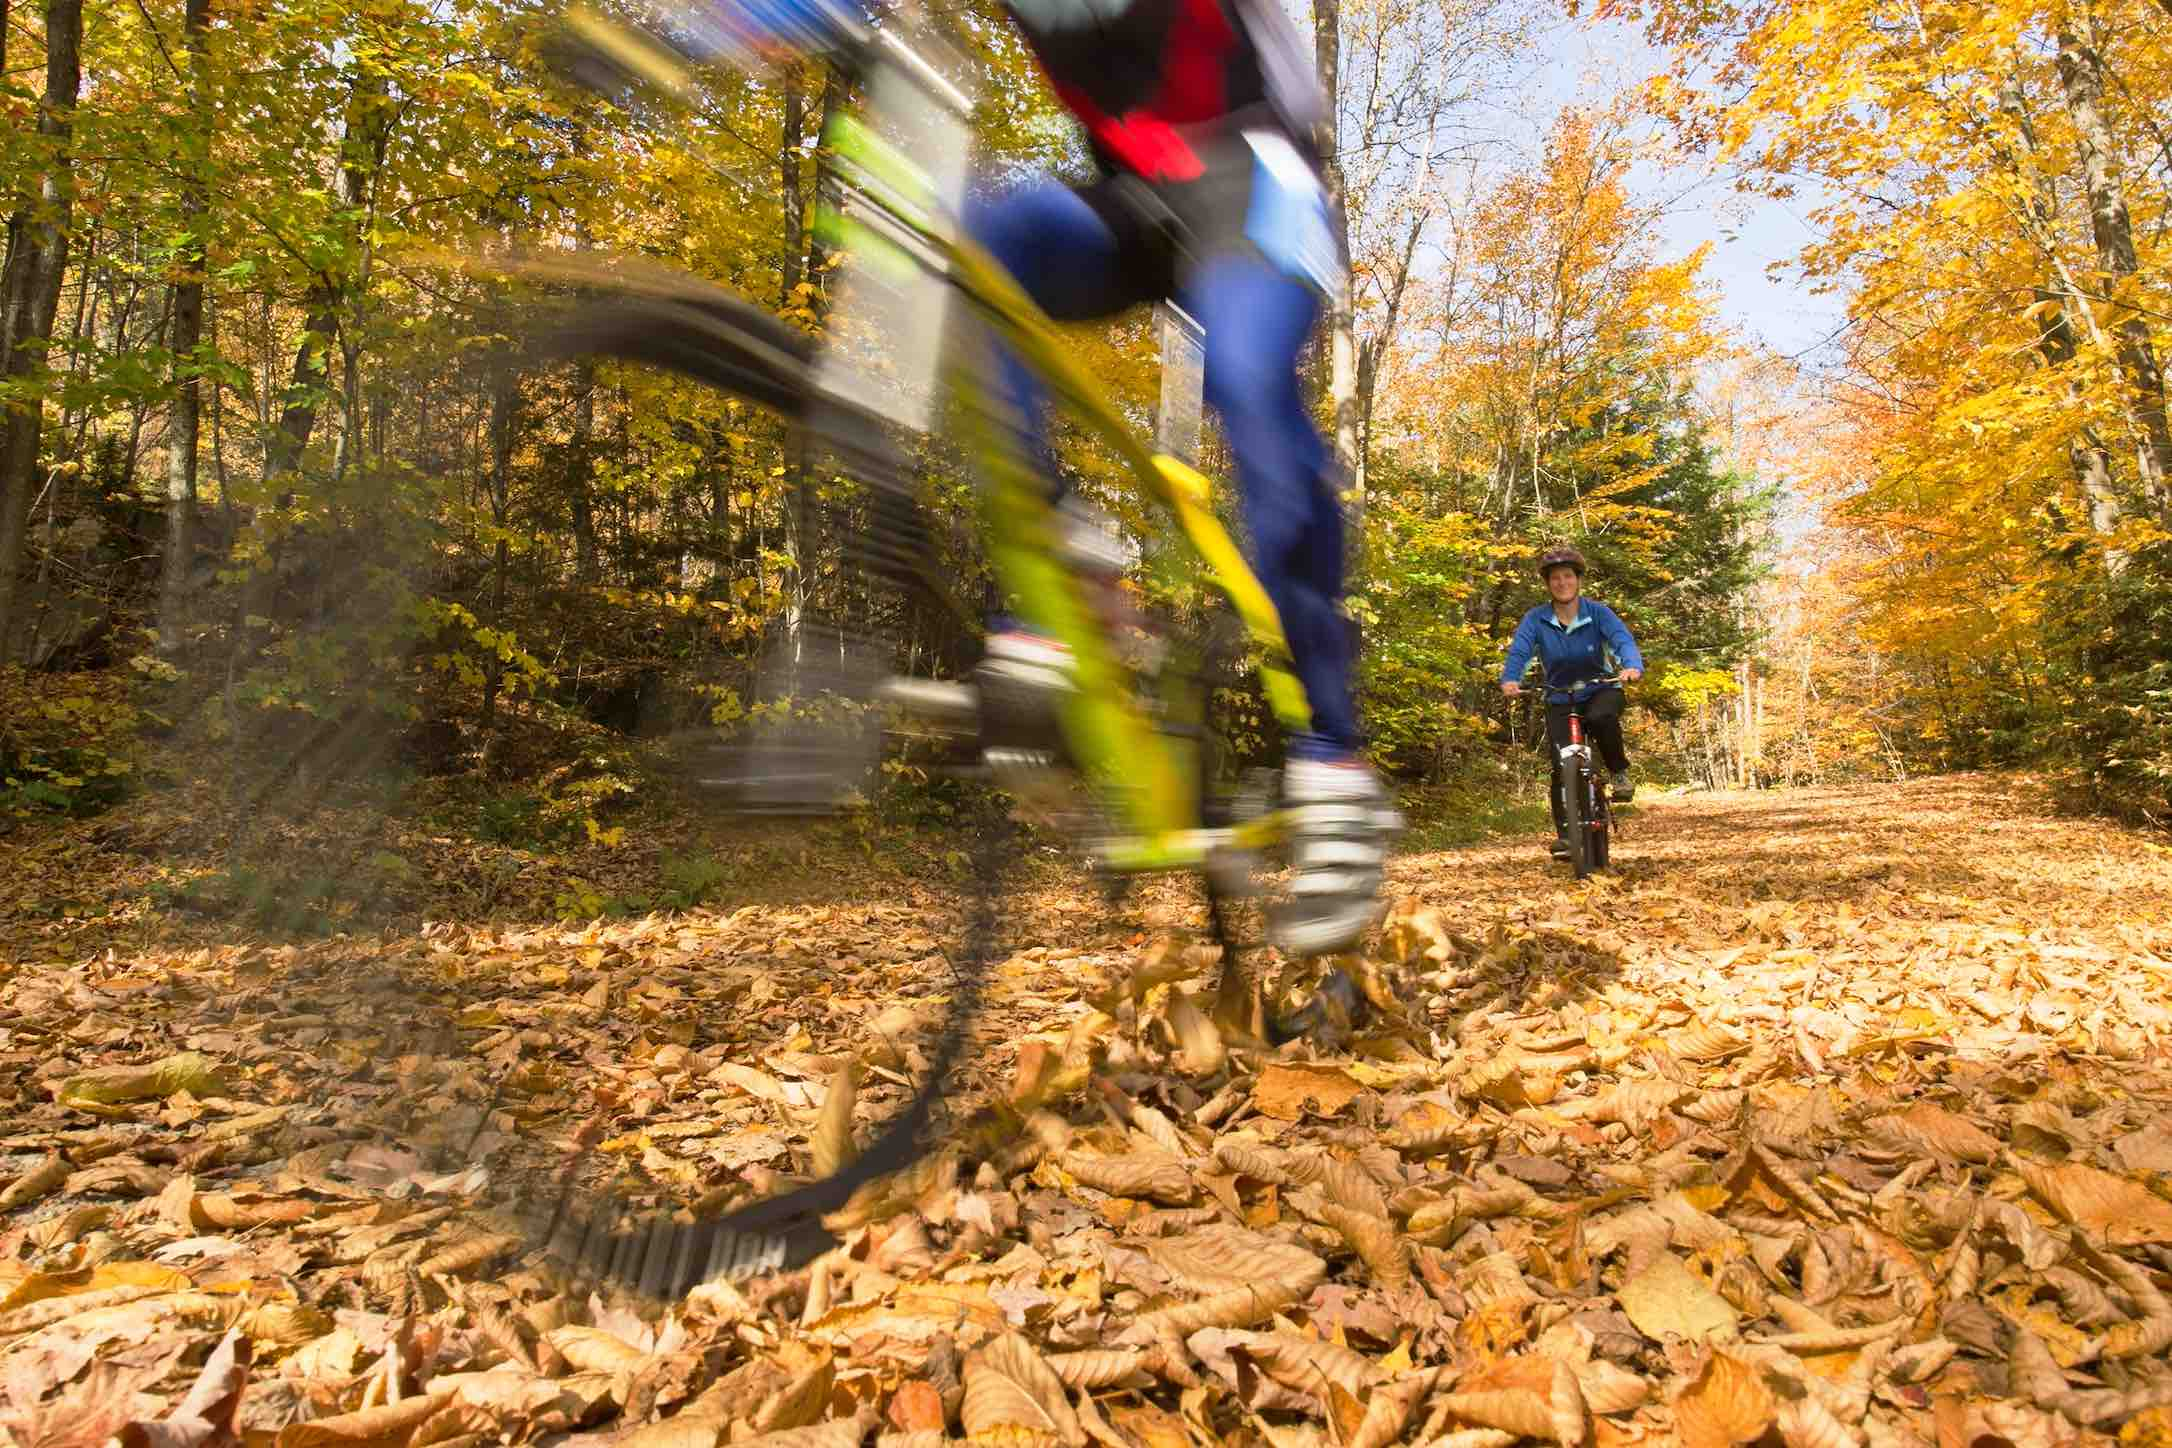 Orillia People Biking on trails in the fall